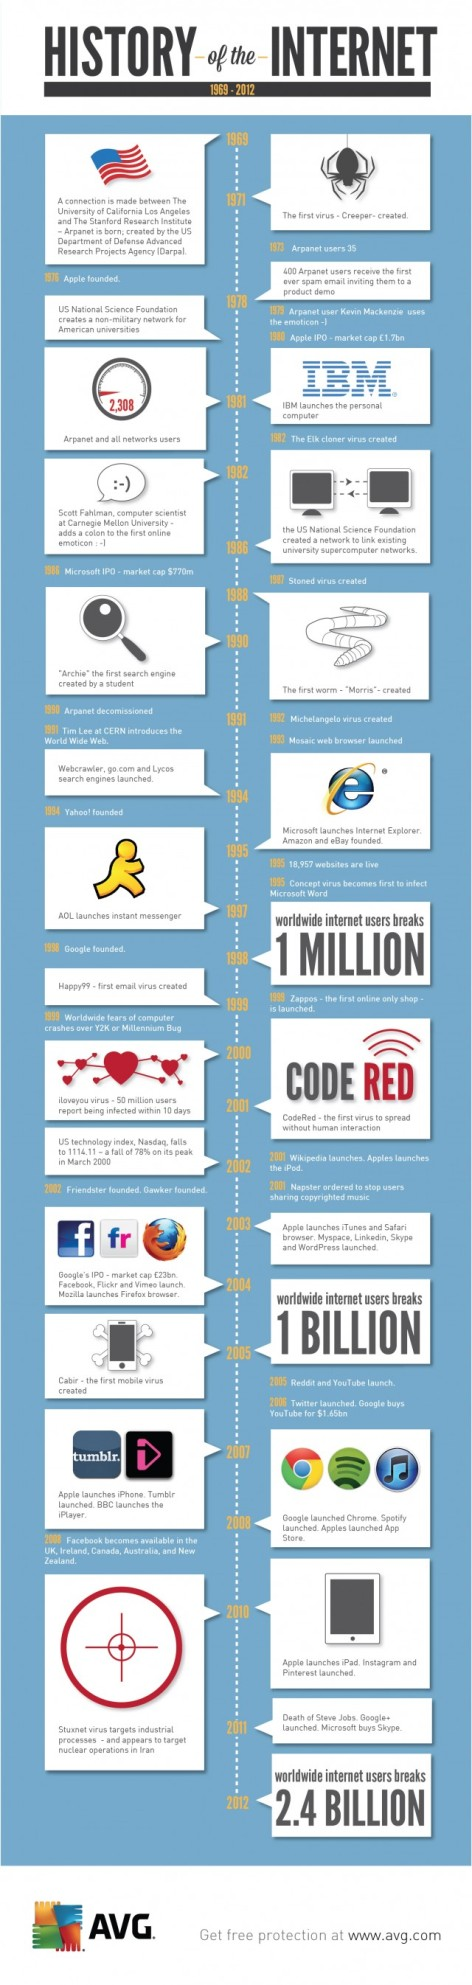 history-of-the-internet-640x2692